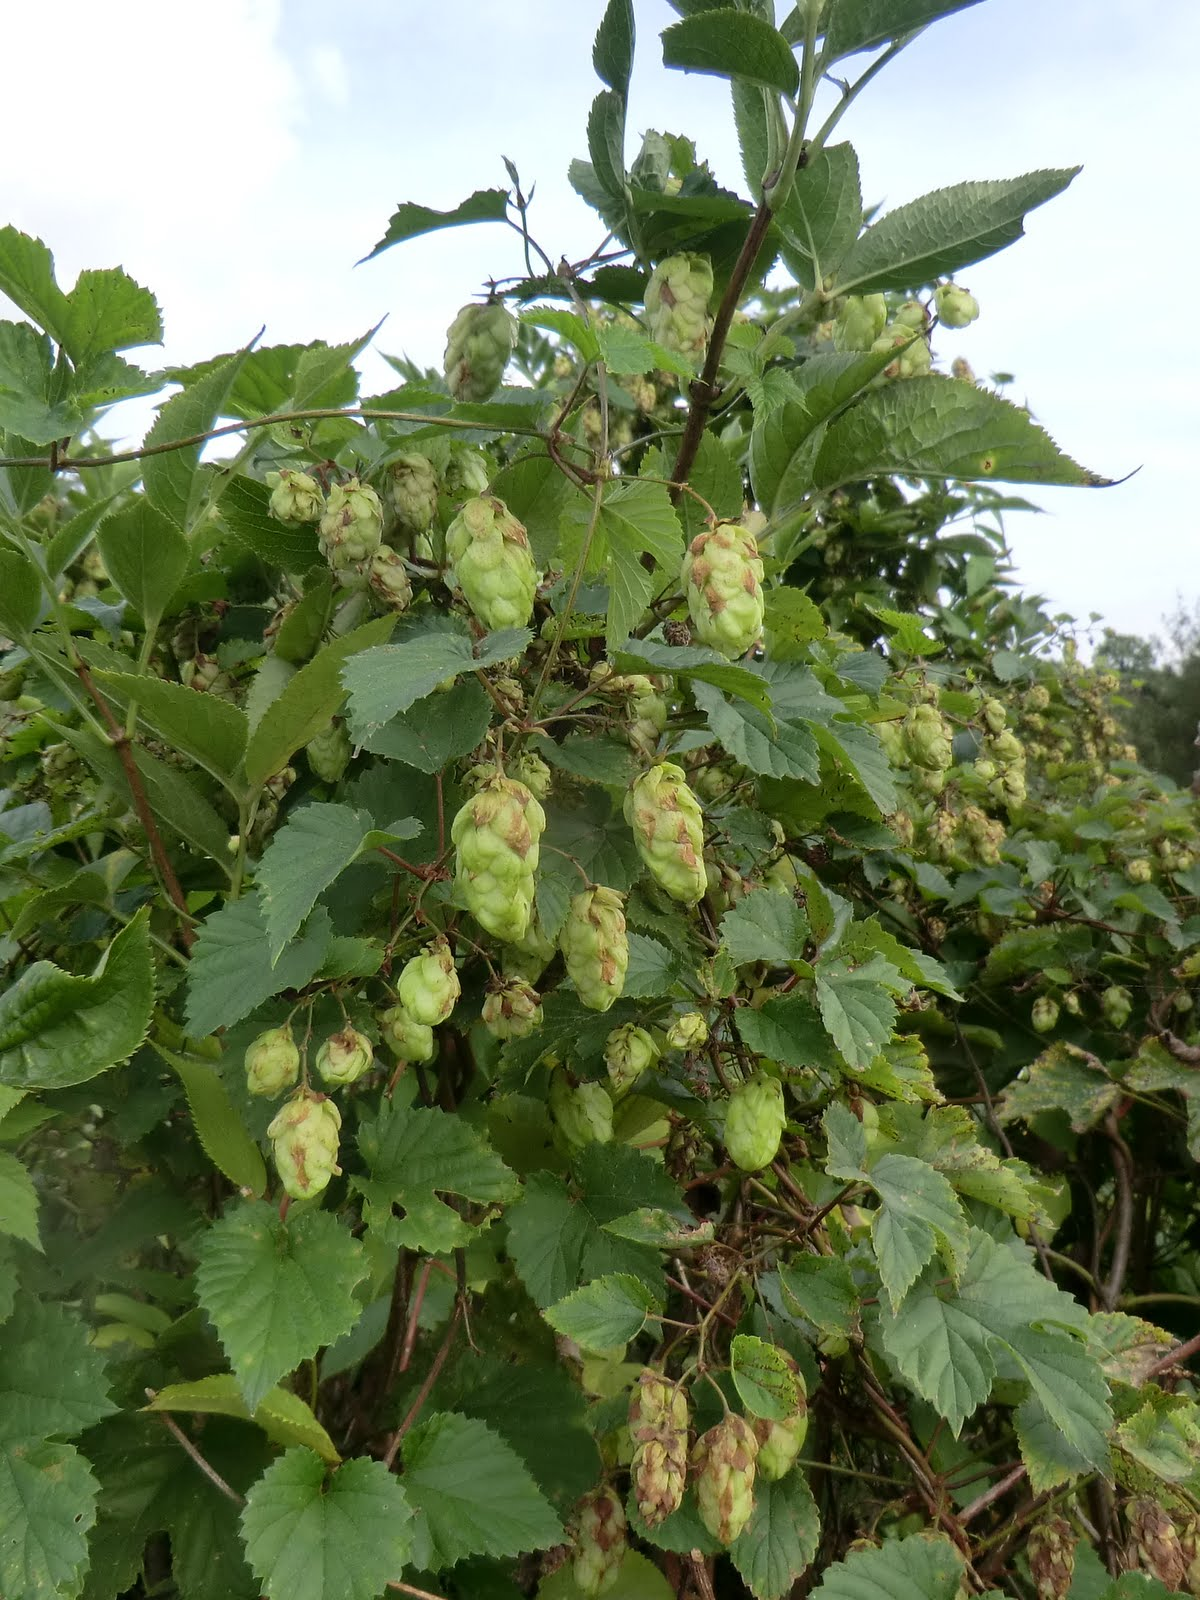 CIMG4756 Hops in hedgerow, North Stoke